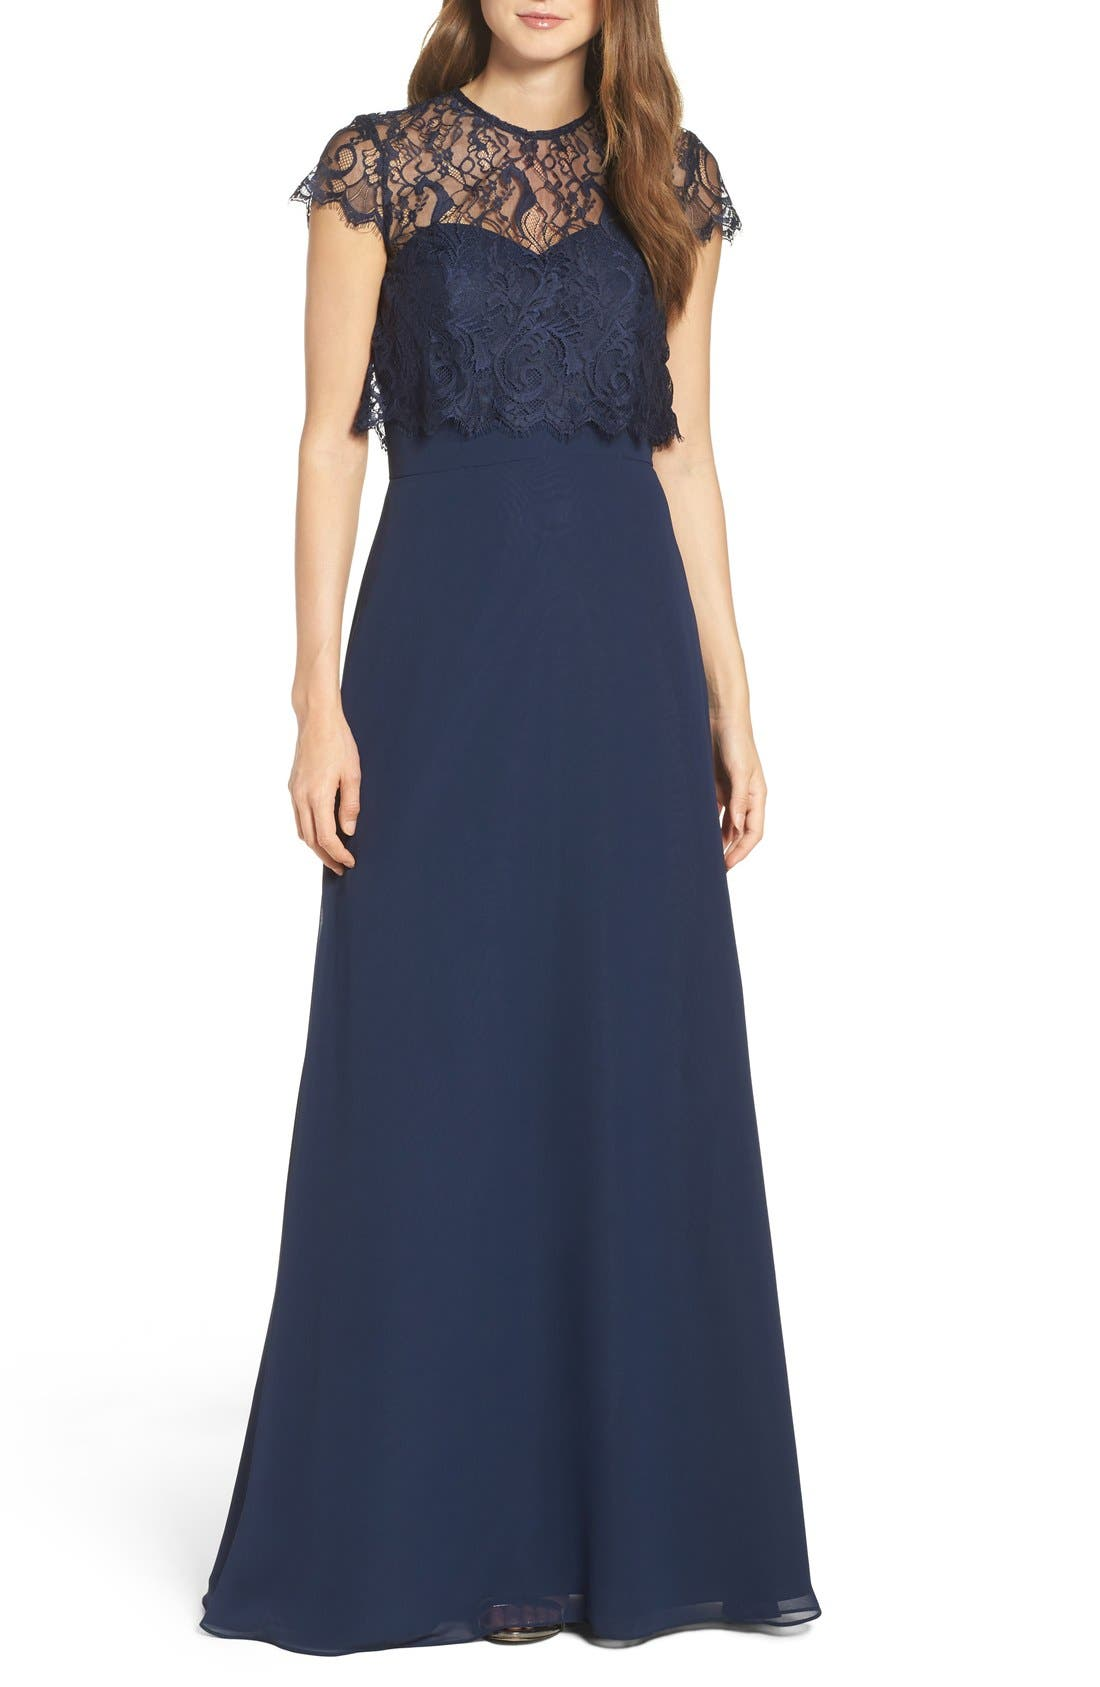 Strapless Chiffon A-Line Gown with Removable Lace Overlay,                             Main thumbnail 1, color,                             Navy